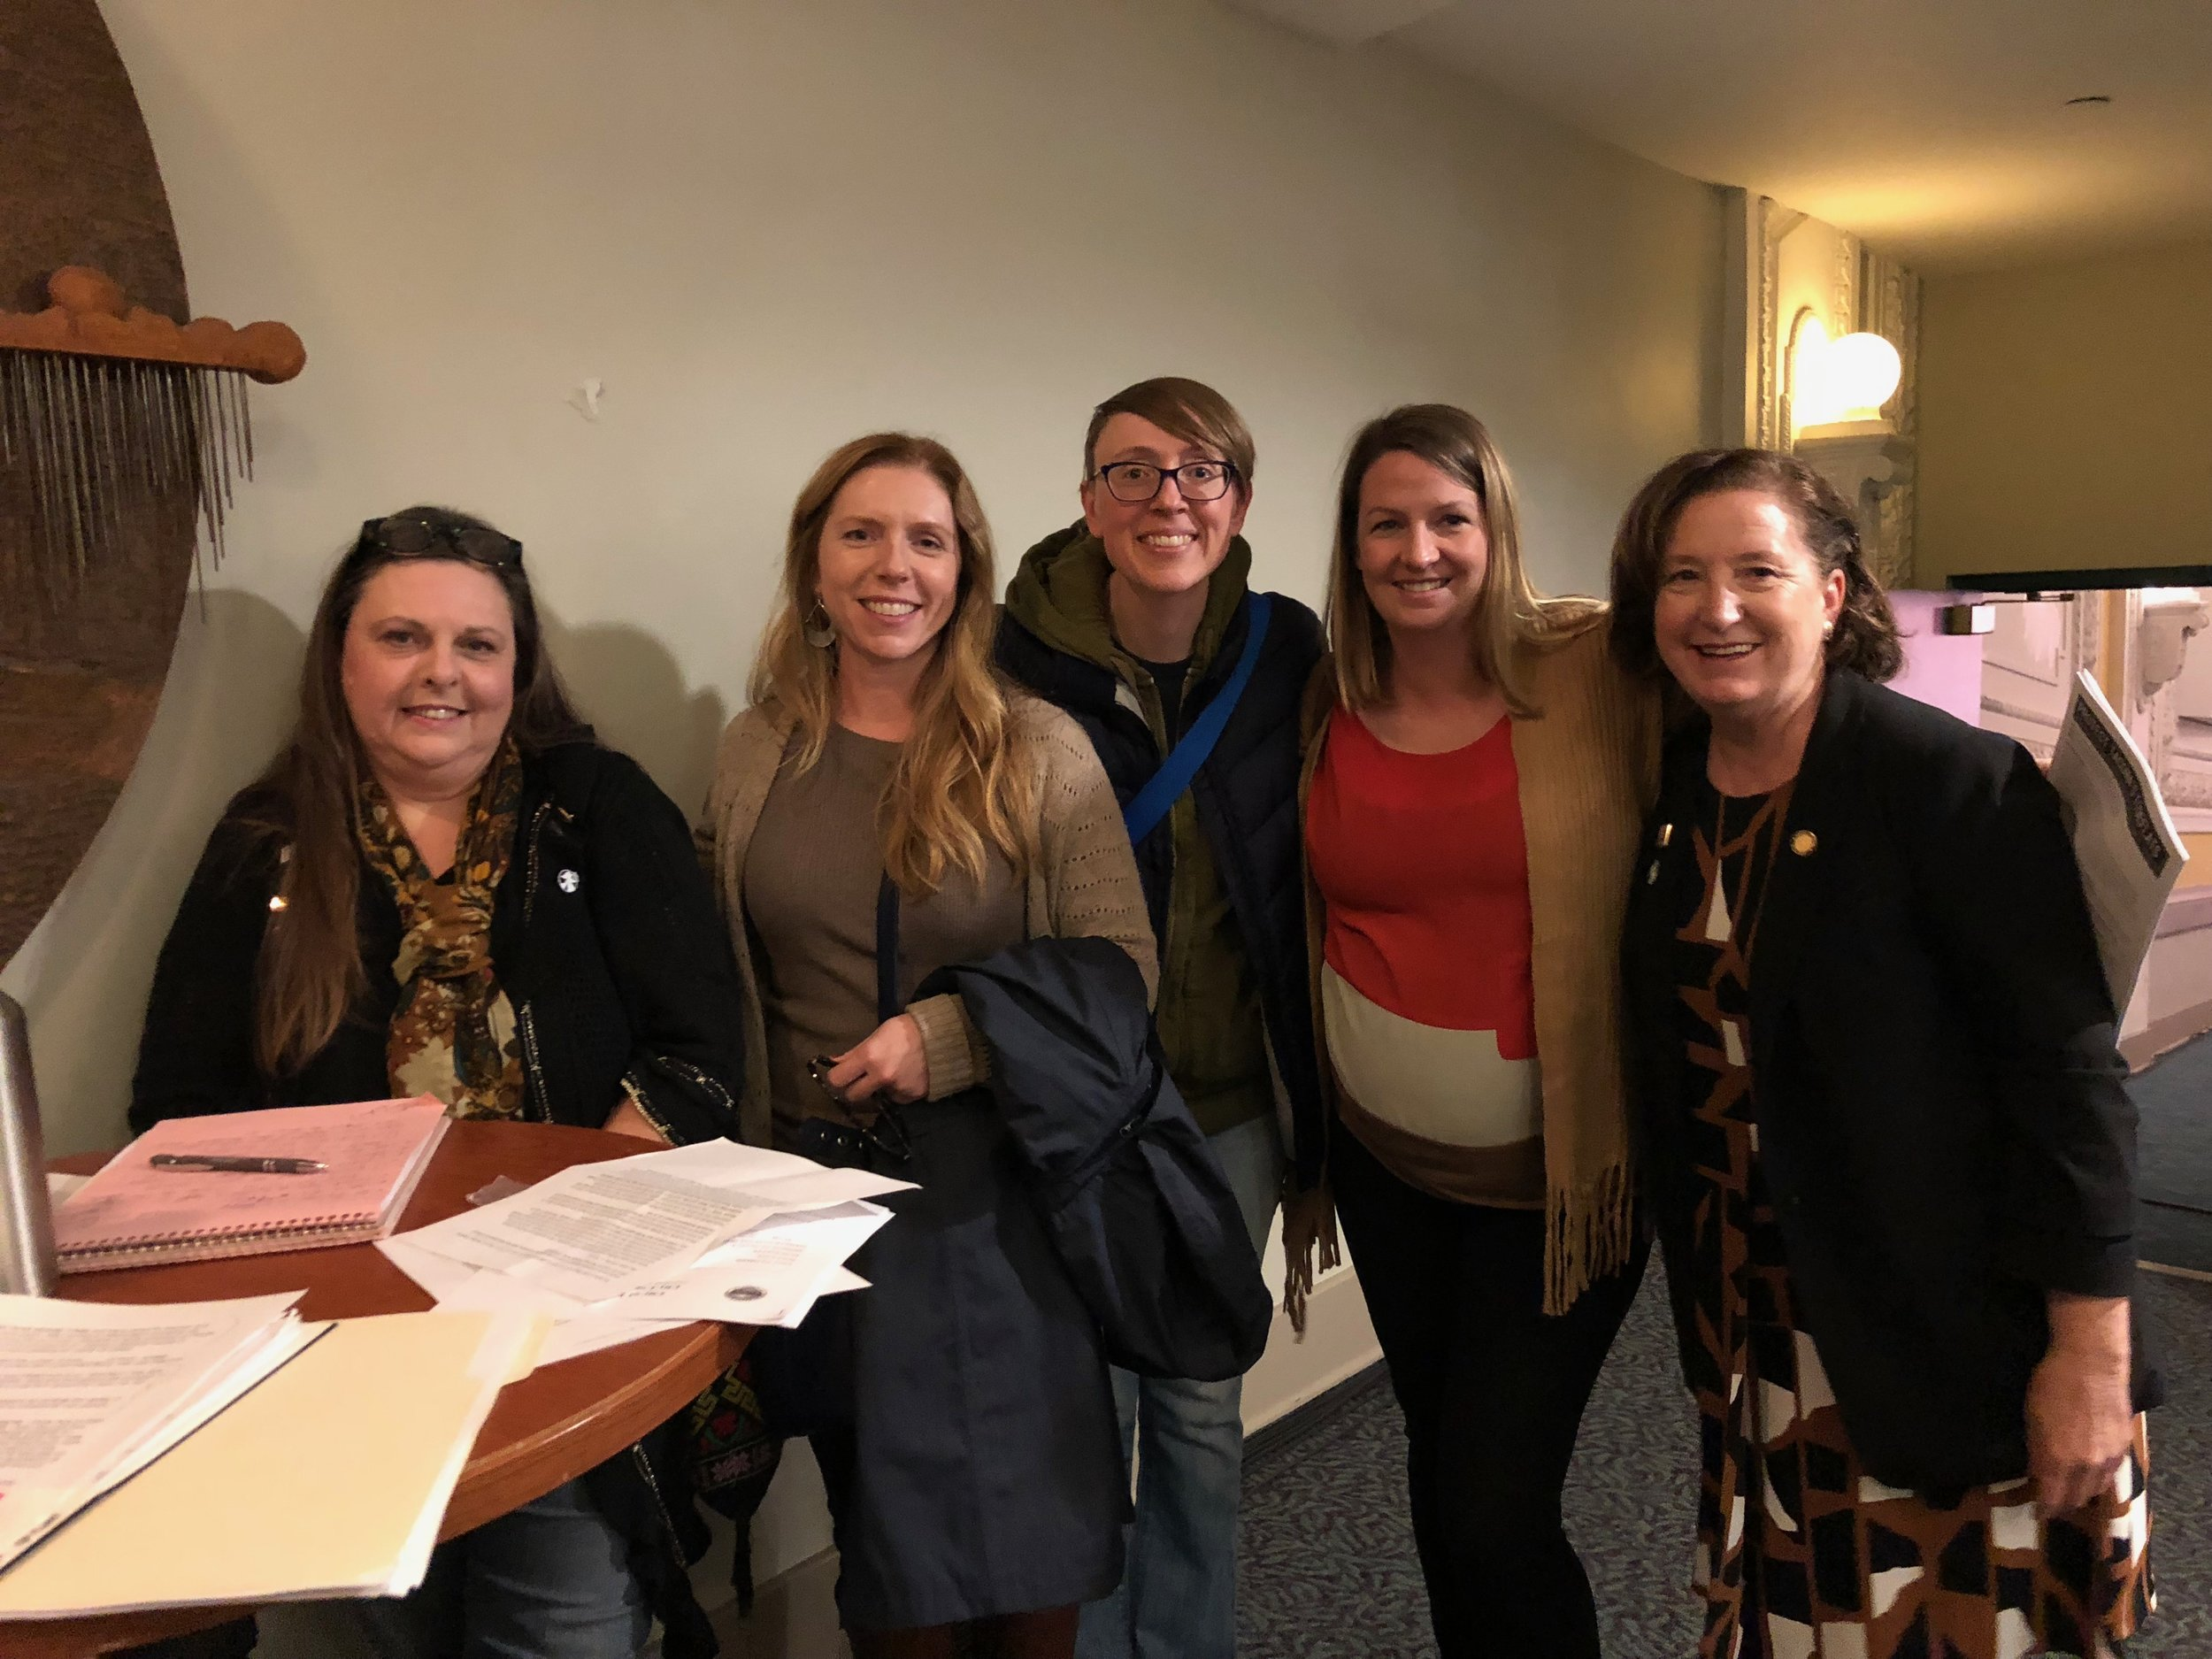 Nurses and public health professionals testify in support of regulations limiting new fossil fuel projects in Tacoma in November, 2018.